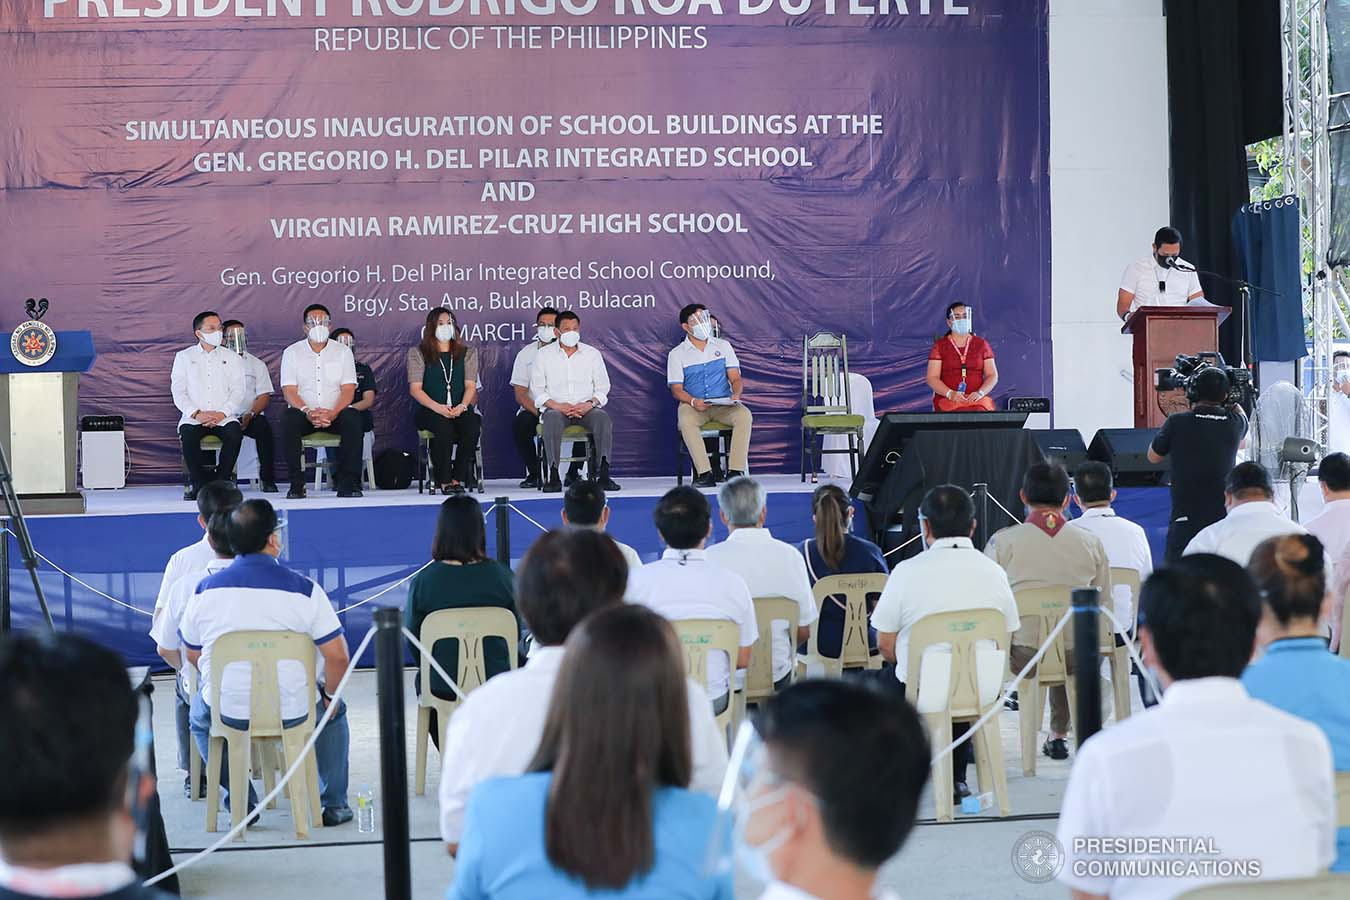 President Rodrigo Roa Duterte listens as Bulacan Governor Daniel Fernando delivers his welcome remarks during the inauguration of the newly constructed Gen. Gregorio H. Del Pilar Integrated School and Virginia Ramirez-Cruz High School buildings in Bulakan, Bulacan on March 4, 2021. ALFRED FRIAS/ PRESIDENTIAL PHOTO